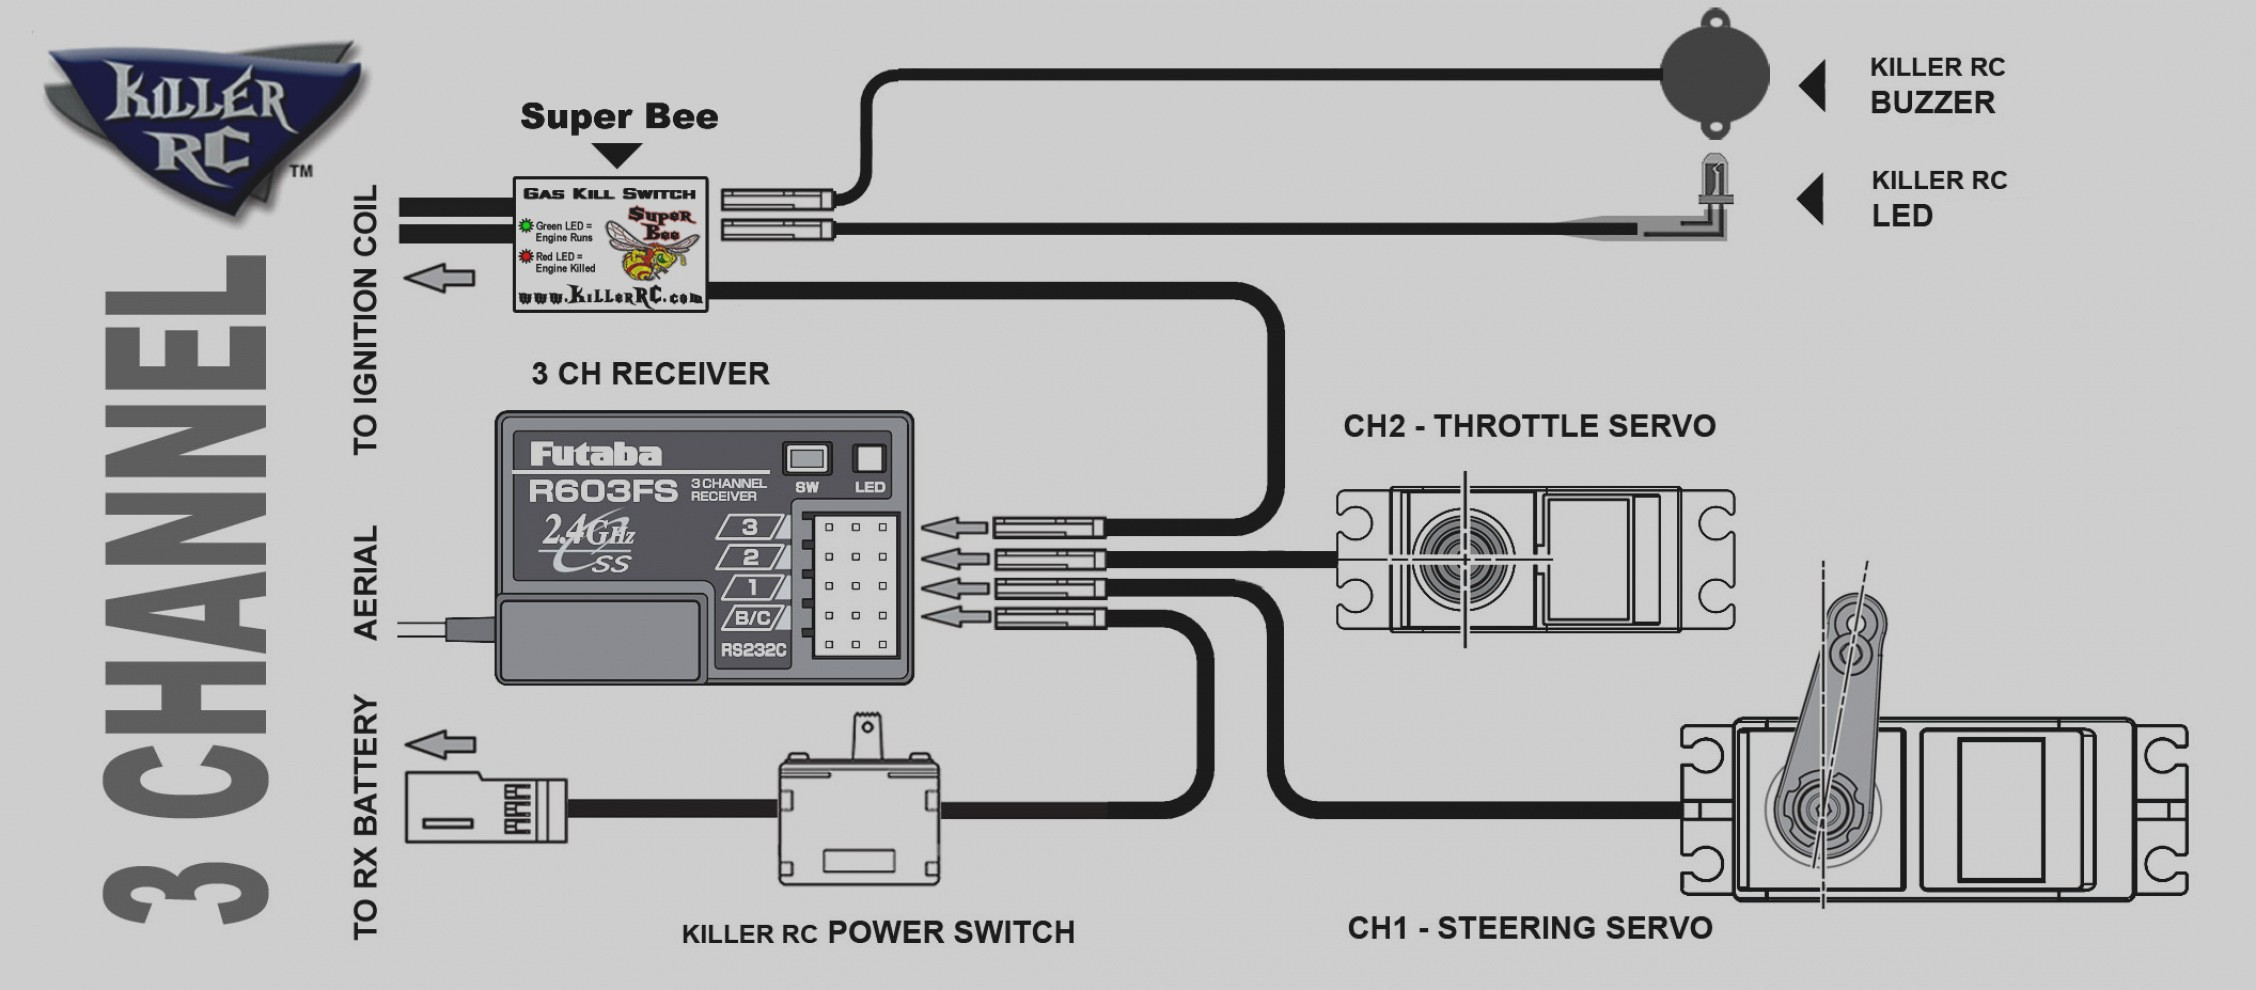 Wiring Diagram for A Guitar Kill Switch New Killswitch Wiring Diagram Guitar Refrence Dorable with Kill